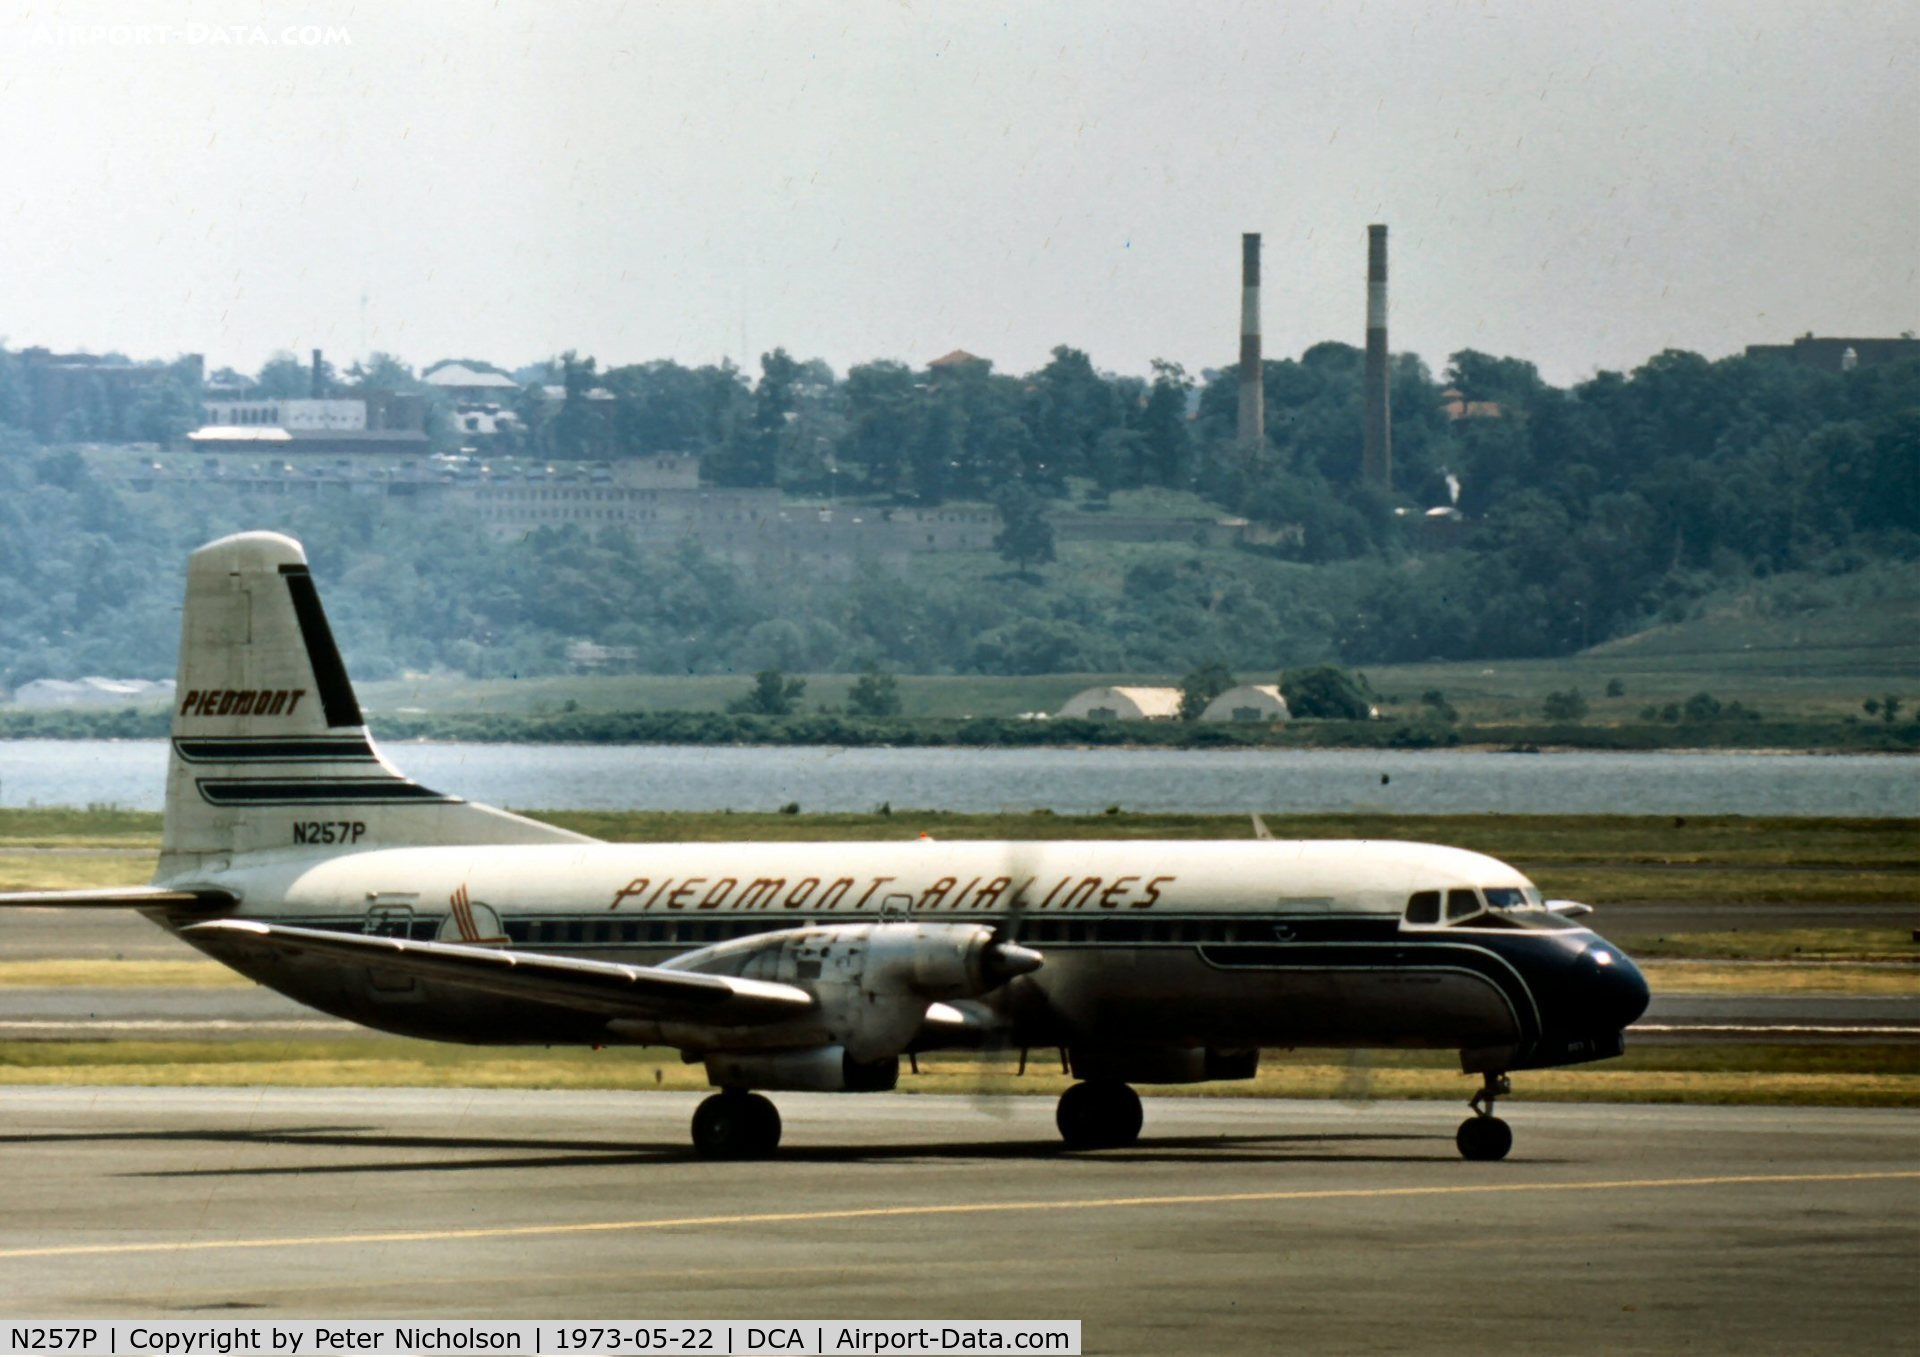 N257P, Nihon YS-11A-500 C/N 2118, Operated by Piedmont Airlines and named Santee Pacemaker - seen taxying at Washington National in the summer of 1973.